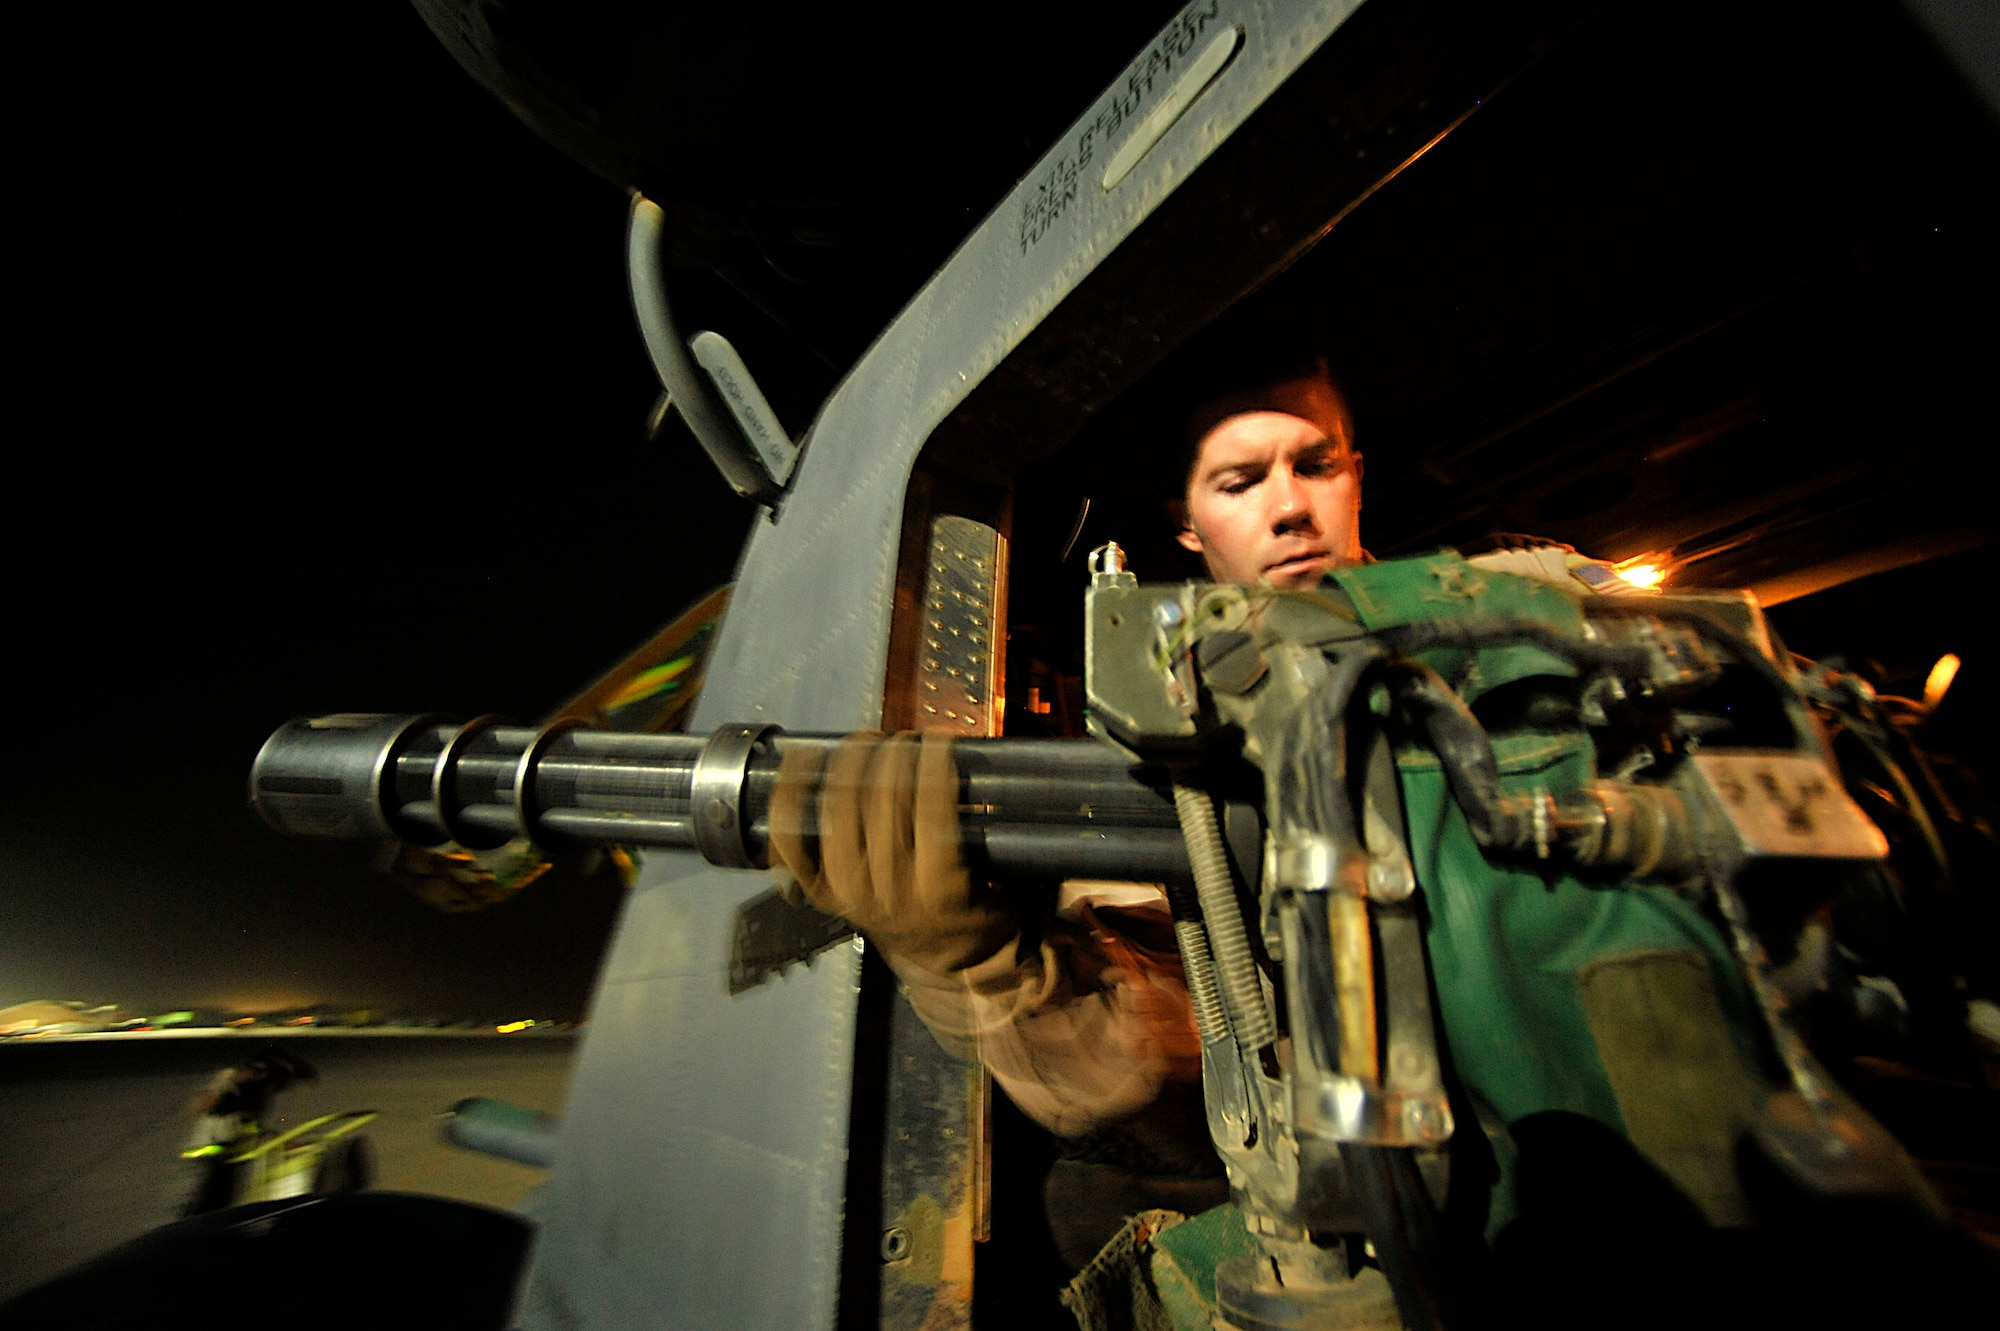 Tech. Sgt. Corey Fossbender, 20th Expeditionary Special Operations Squadron arial gunner, checks his mini gun prior to the last combat mission of the MH-53 Pave Low helicopter Sept. 27, 2008 during Operation Iraqi Freedom. The operation began in March 2003, when AFSOC deployed forces to Southwest Asia to remove Saddam Hussein from power and liberate the Iraqi people. The command's personnel and aircraft teamed with other SOF and conventional forces to quickly bring down Saddam Hussein's government by May 2003. To ensure the seeds of democracy had time to grow in Iraq, AFSOC forces continued to conduct operations well into 2010. (U.S. Air Force photo by Staff Sgt. Aaron Allmon)